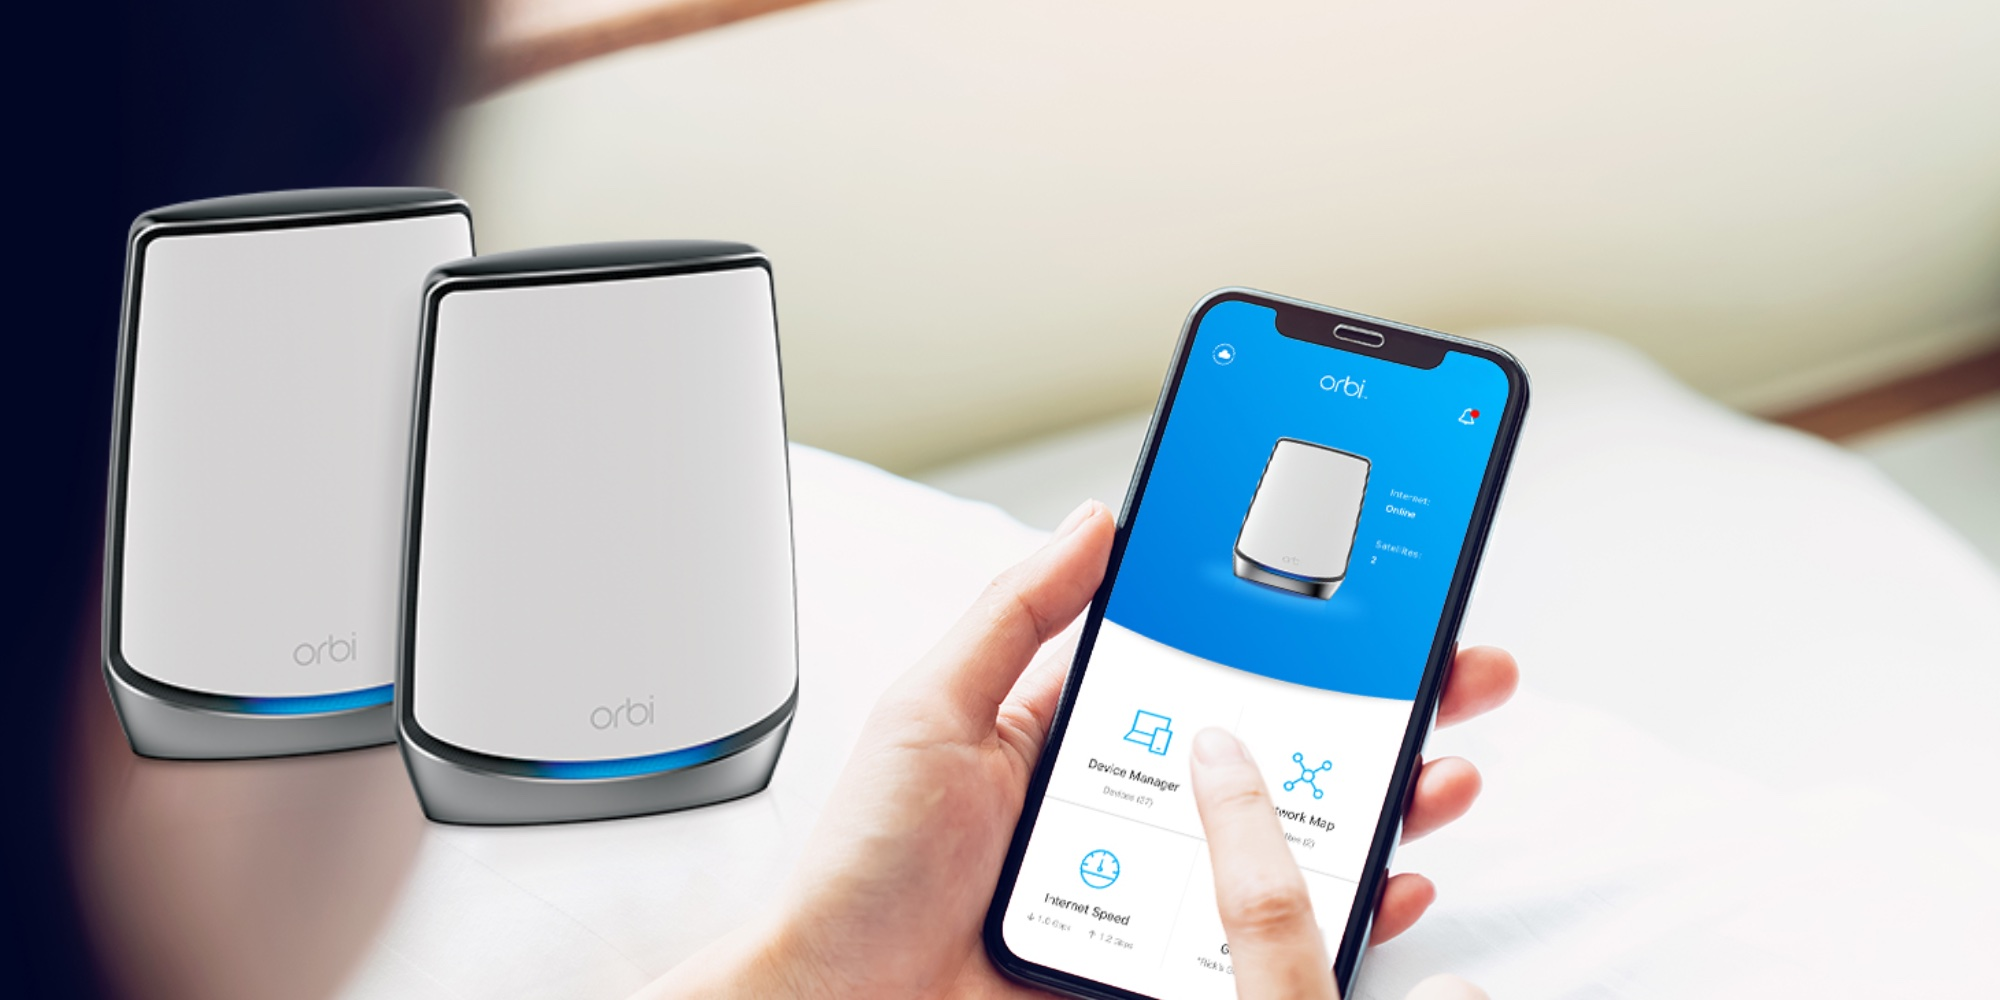 NETGEAR Orbi Wi-Fi 6 Routers debut with luxurious price tag